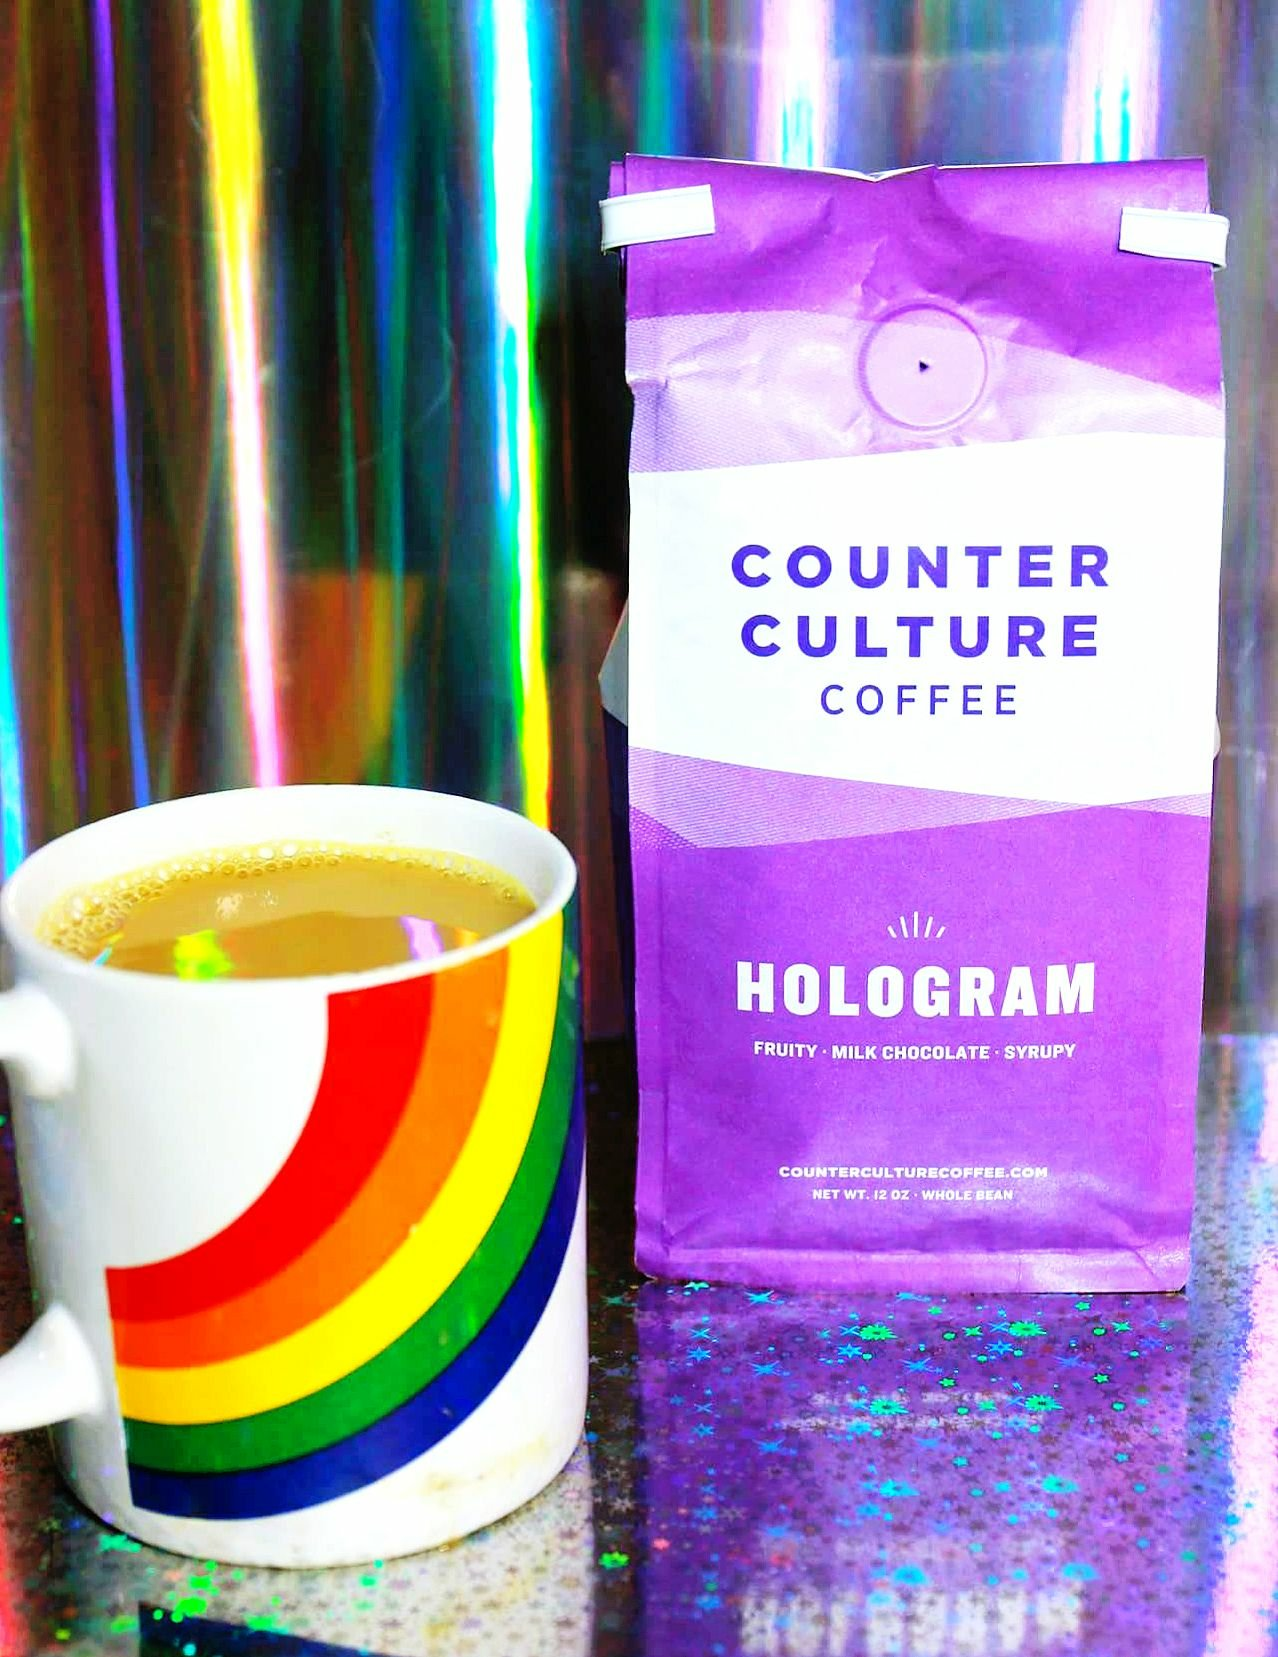 20180822 114037 11935488457 - Counter Culture Coffee - HOLOGRAM - The Coffee You Probably Don't Know About But Should!